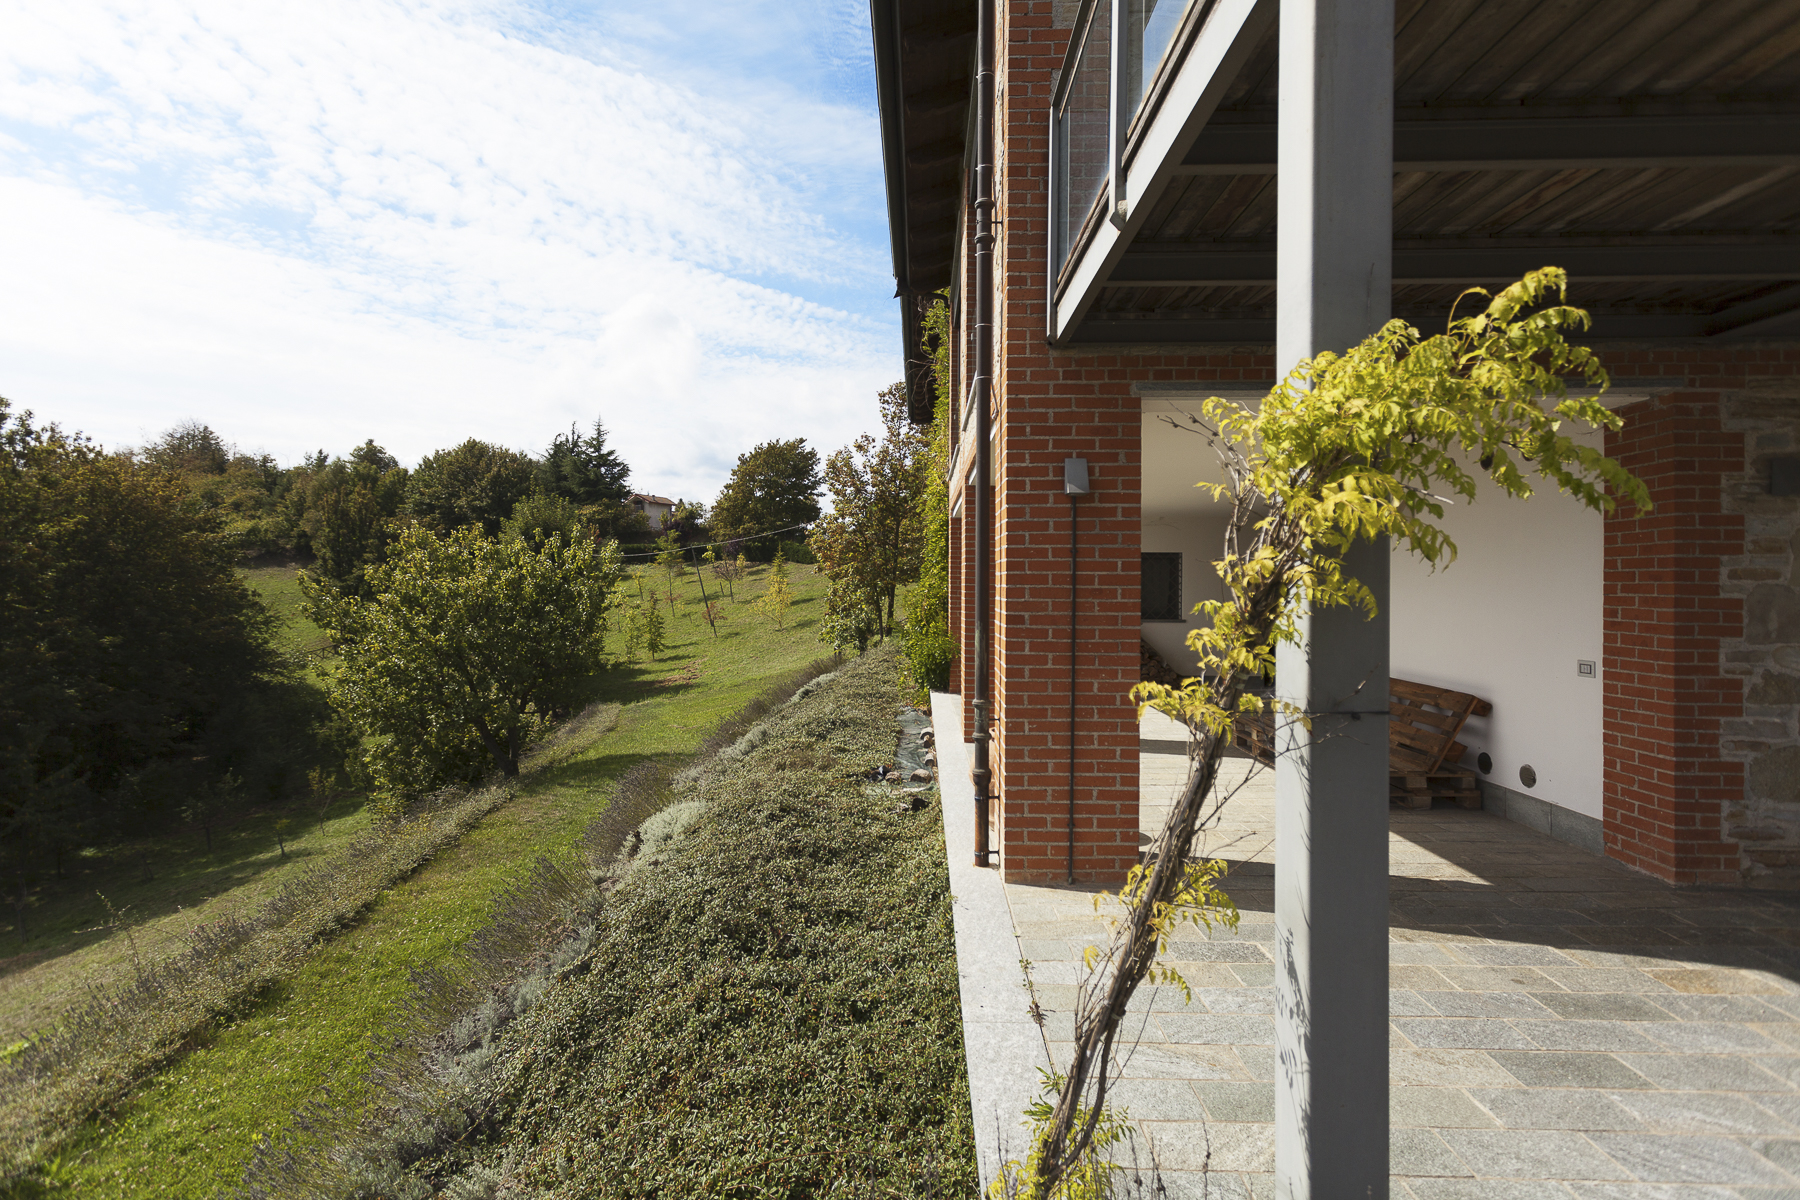 Additional photo for property listing at Country Home overlooking val Bormida Via Nazionale Other Savona, Savona 17017 Italy